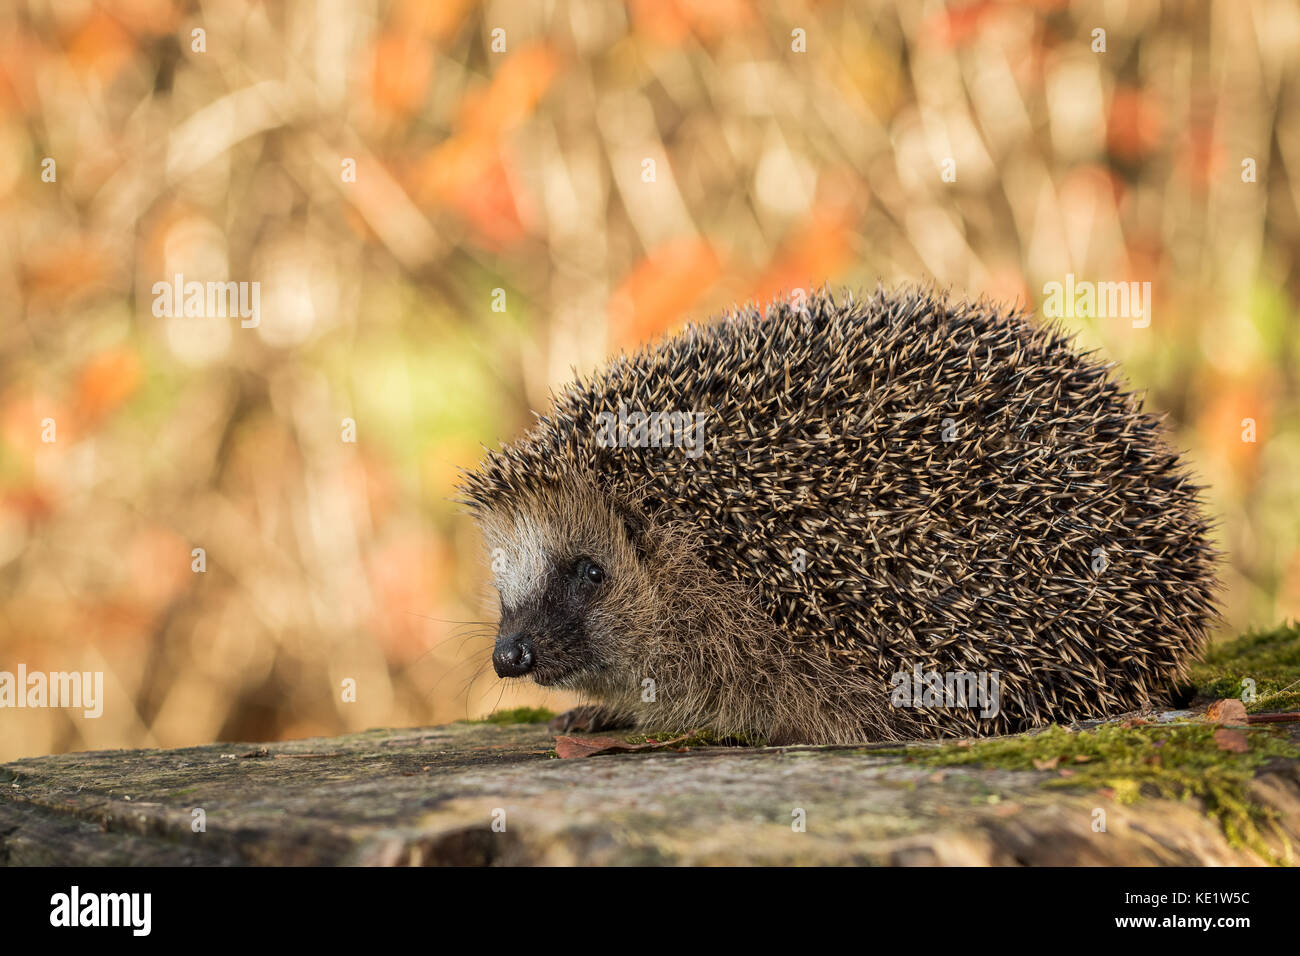 European hedgehog, Erinaceus europaeus with soft colorful autumn leaves in the background - Stock Image